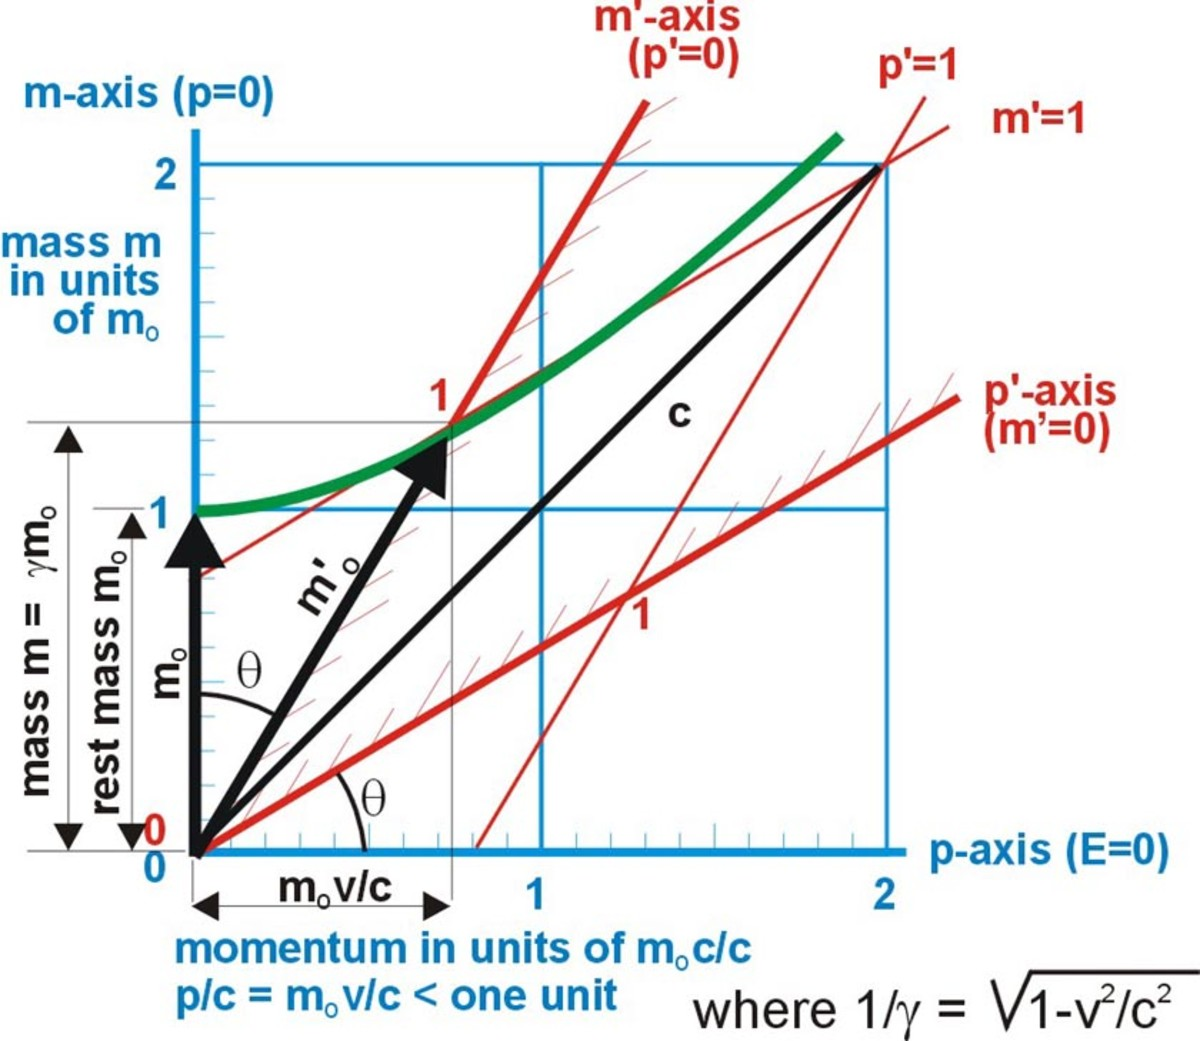 Fig. 15  Lorentz transformations for mass and momentum at a relative velocity of 0.6c is (tan  = (p/c)/m = (mv/c)/m = v/c)